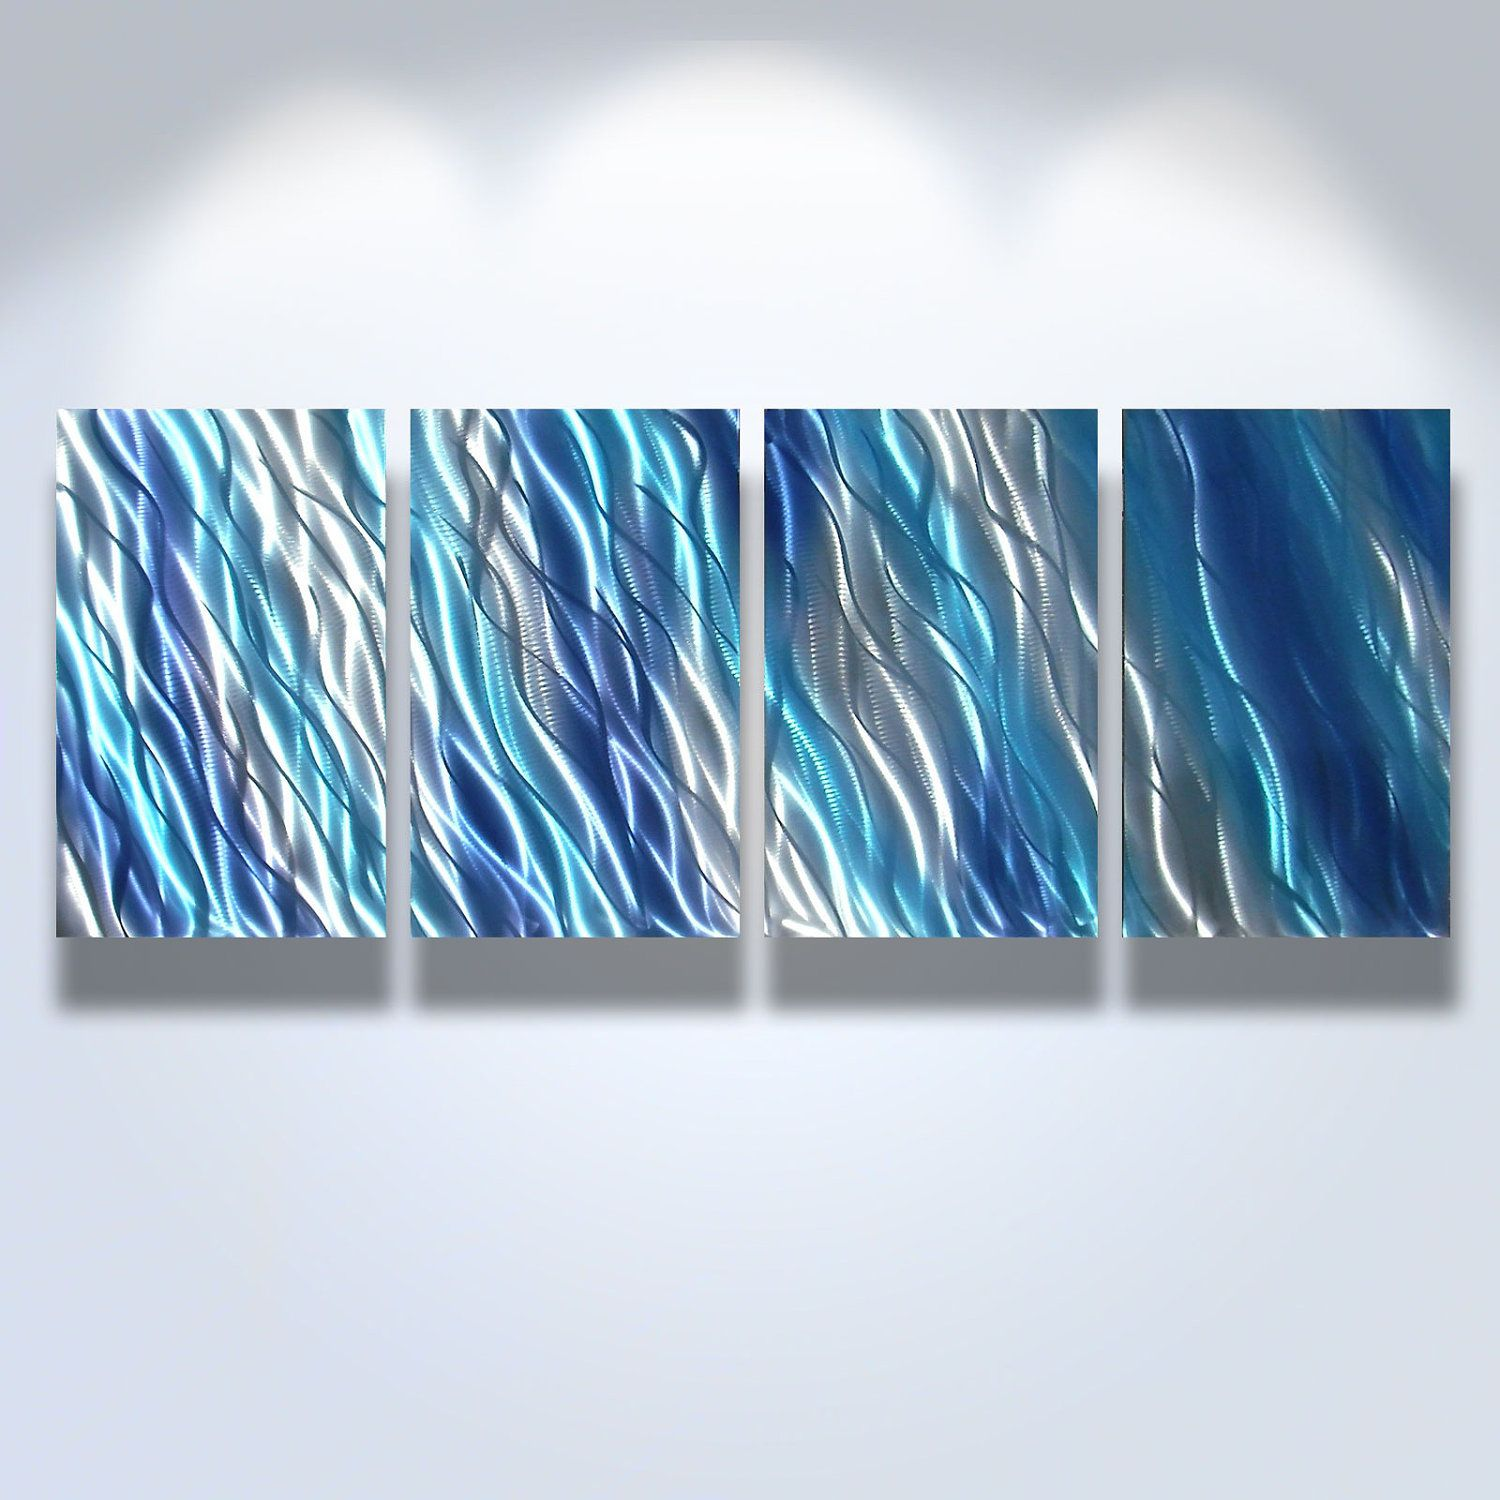 Blue Metal Wall Art Brilliant Metal Wall Art Decor Abstract Contemporary Modern Sculpture Inspiration